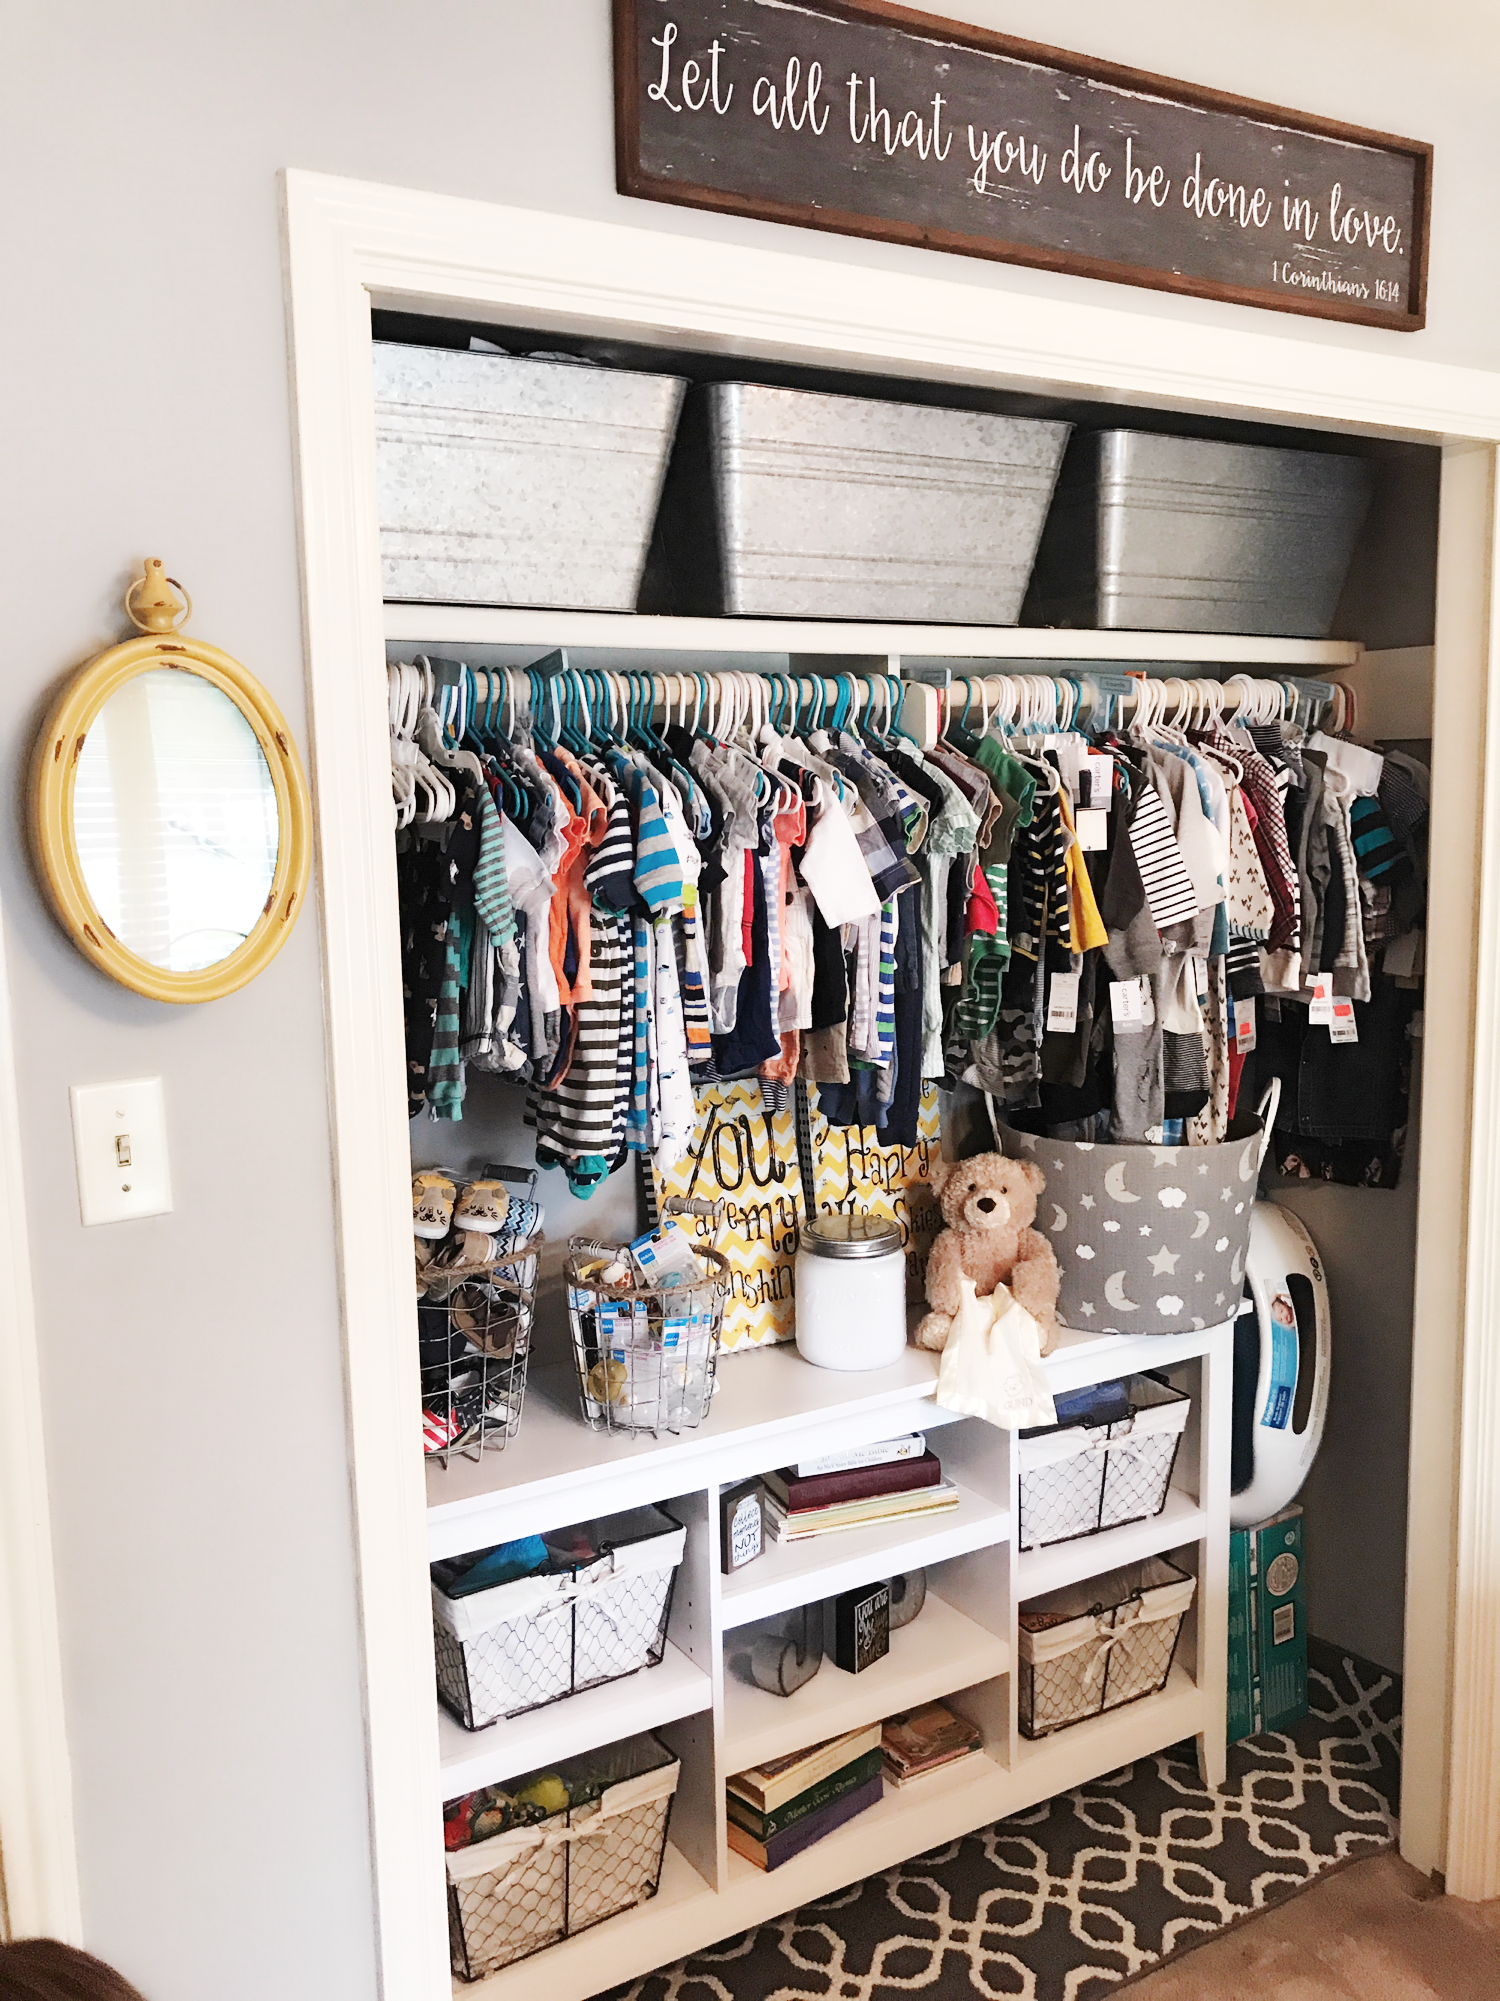 Nursery Closet Organization This Bookshelf And The Bins Are Amazing For Orginizing A Little Ones Spare Room Combo Designed By Jennifer Boyd